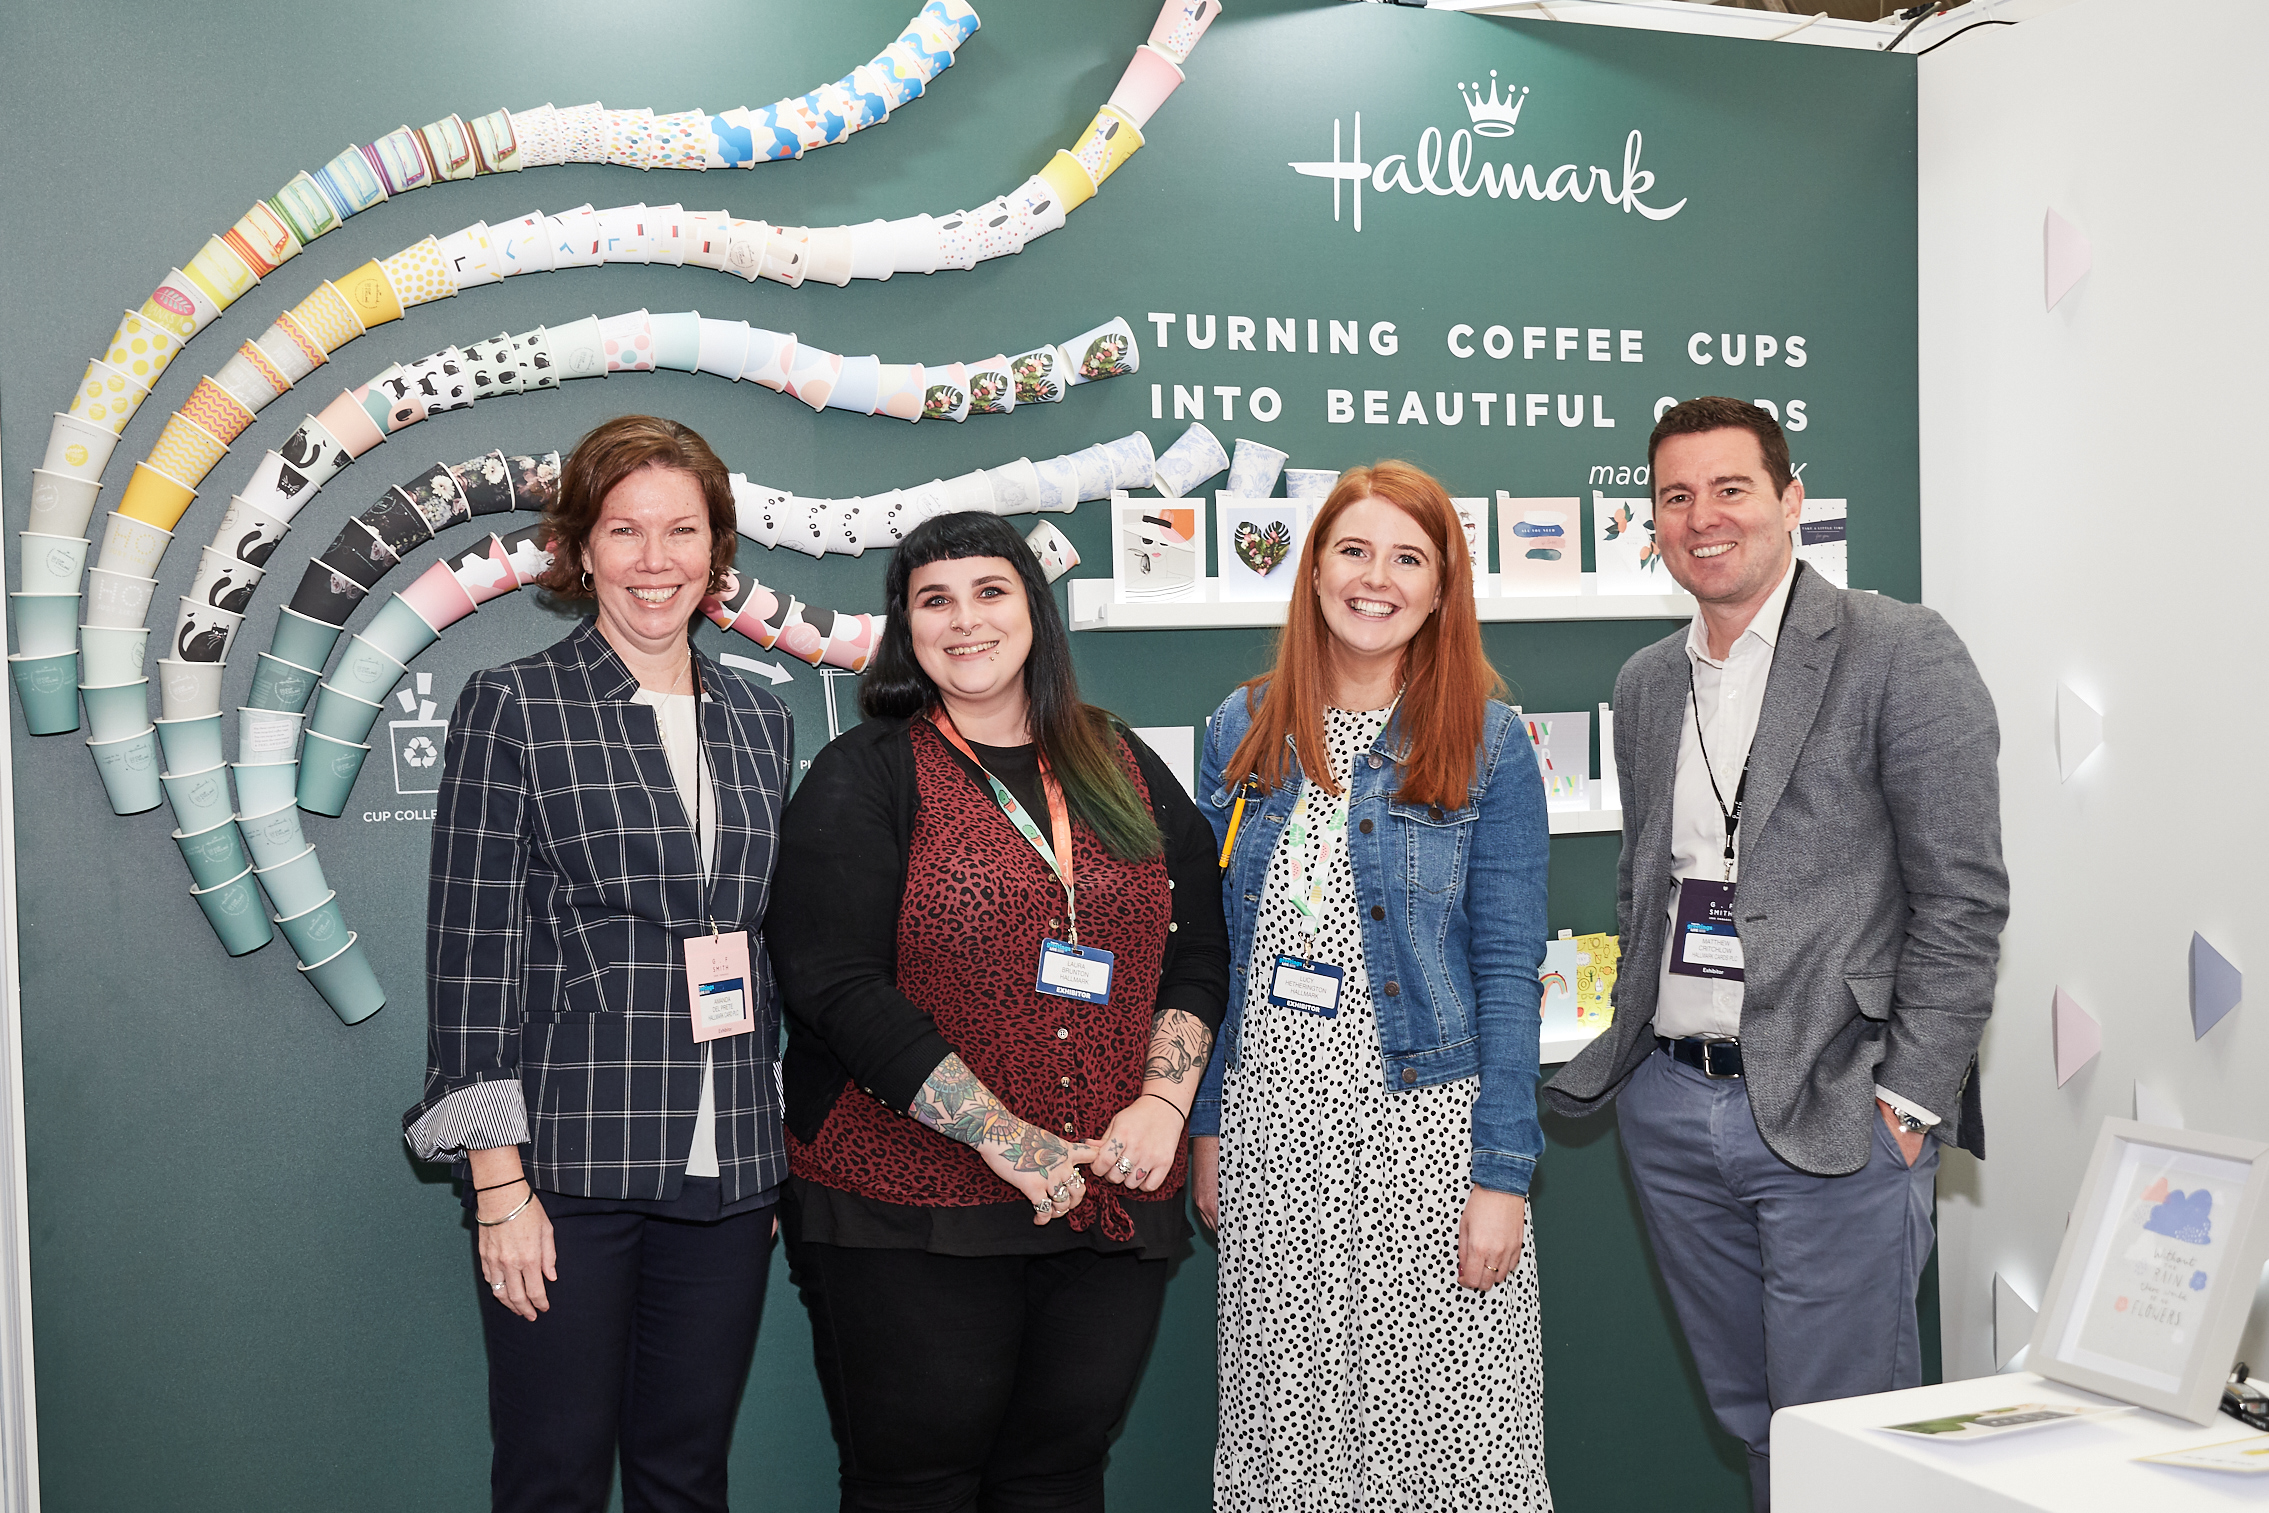 Above: (left-right) Hallmark's  Amanda Del Prete, Laura Brunton, Lucy Hethington and Matt Critchlow on Hallmark's 'Cup Cycling' stand at PG Live.